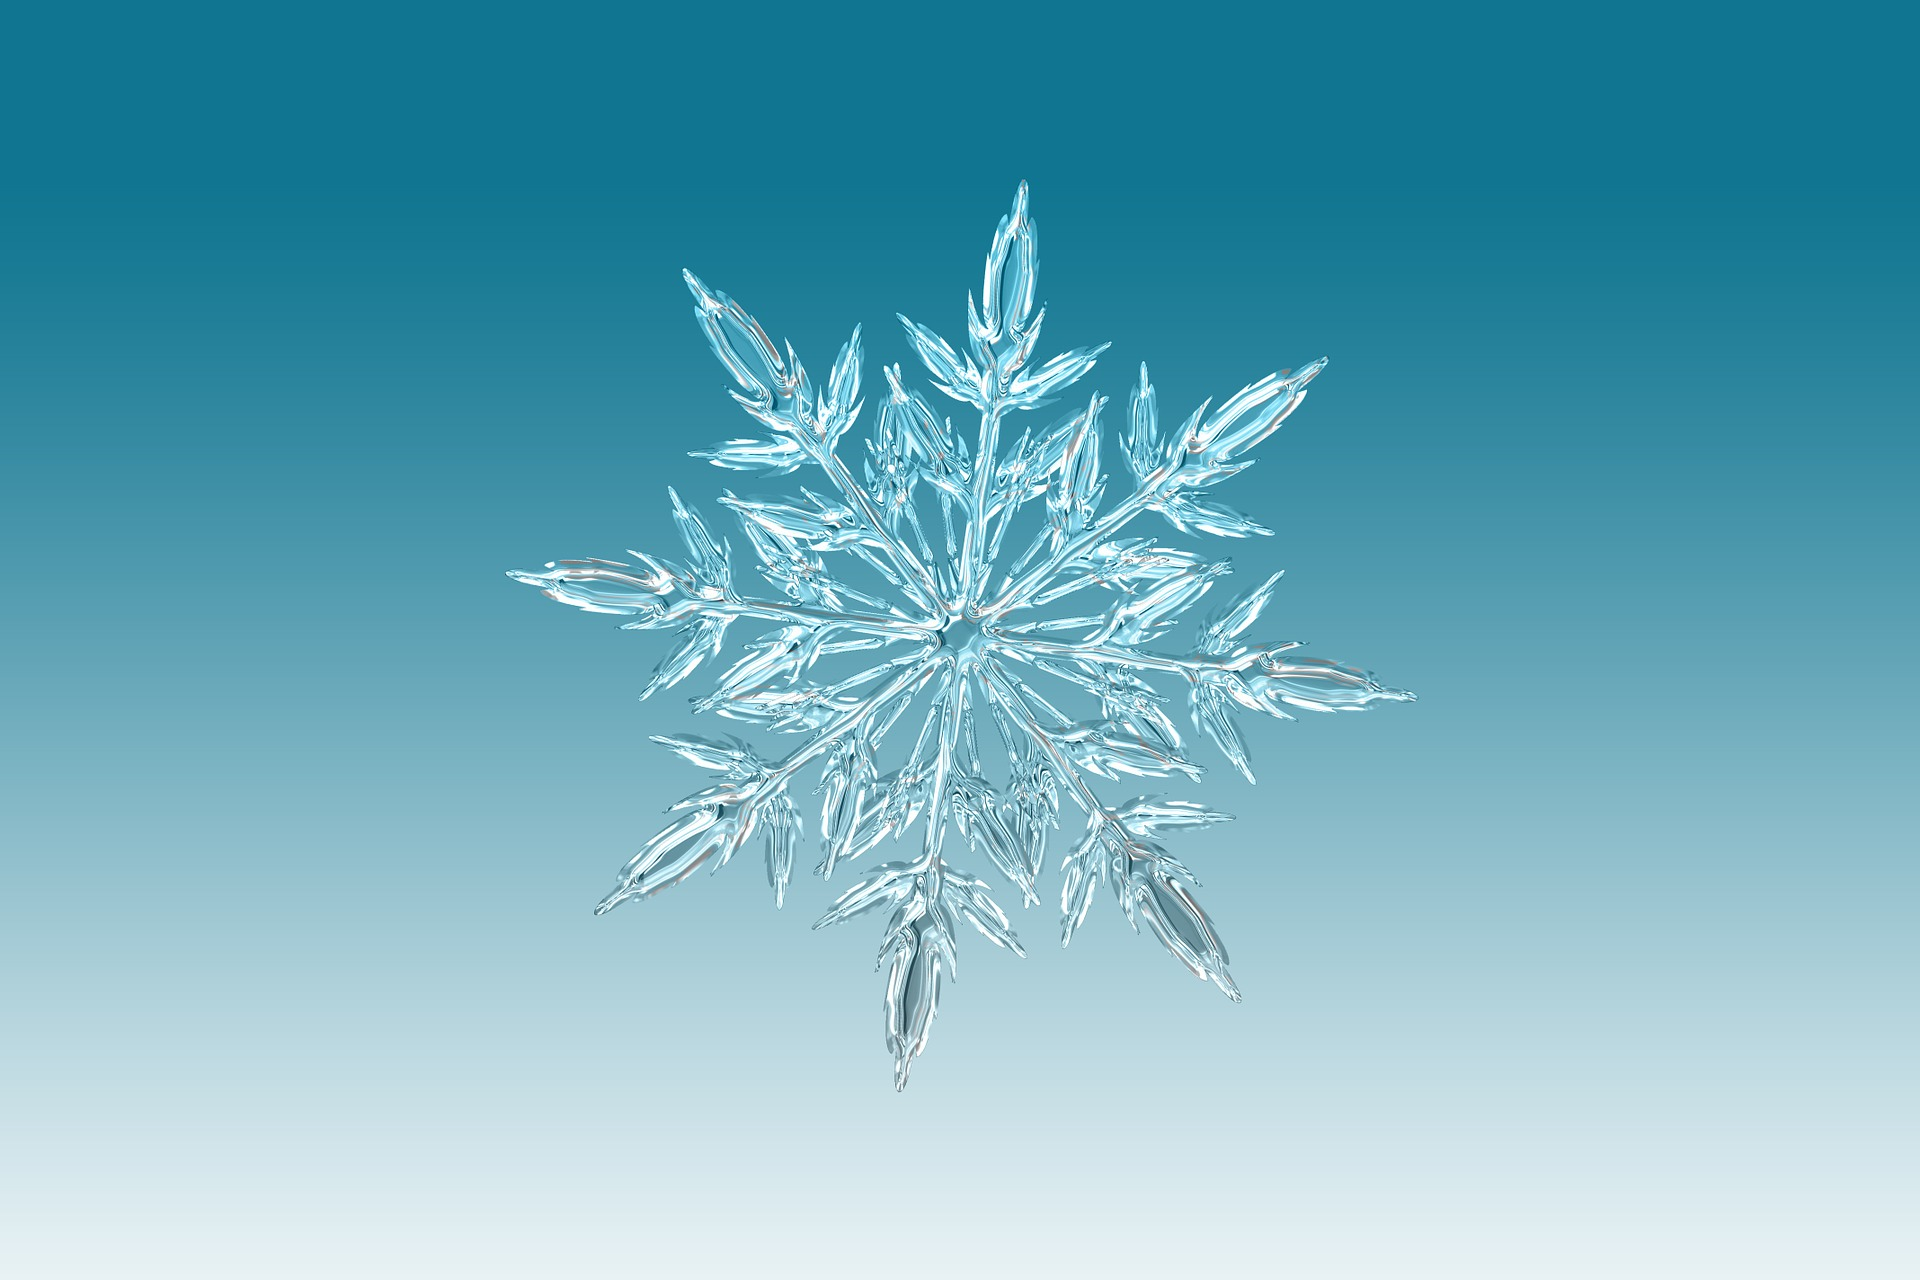 ice-crystal